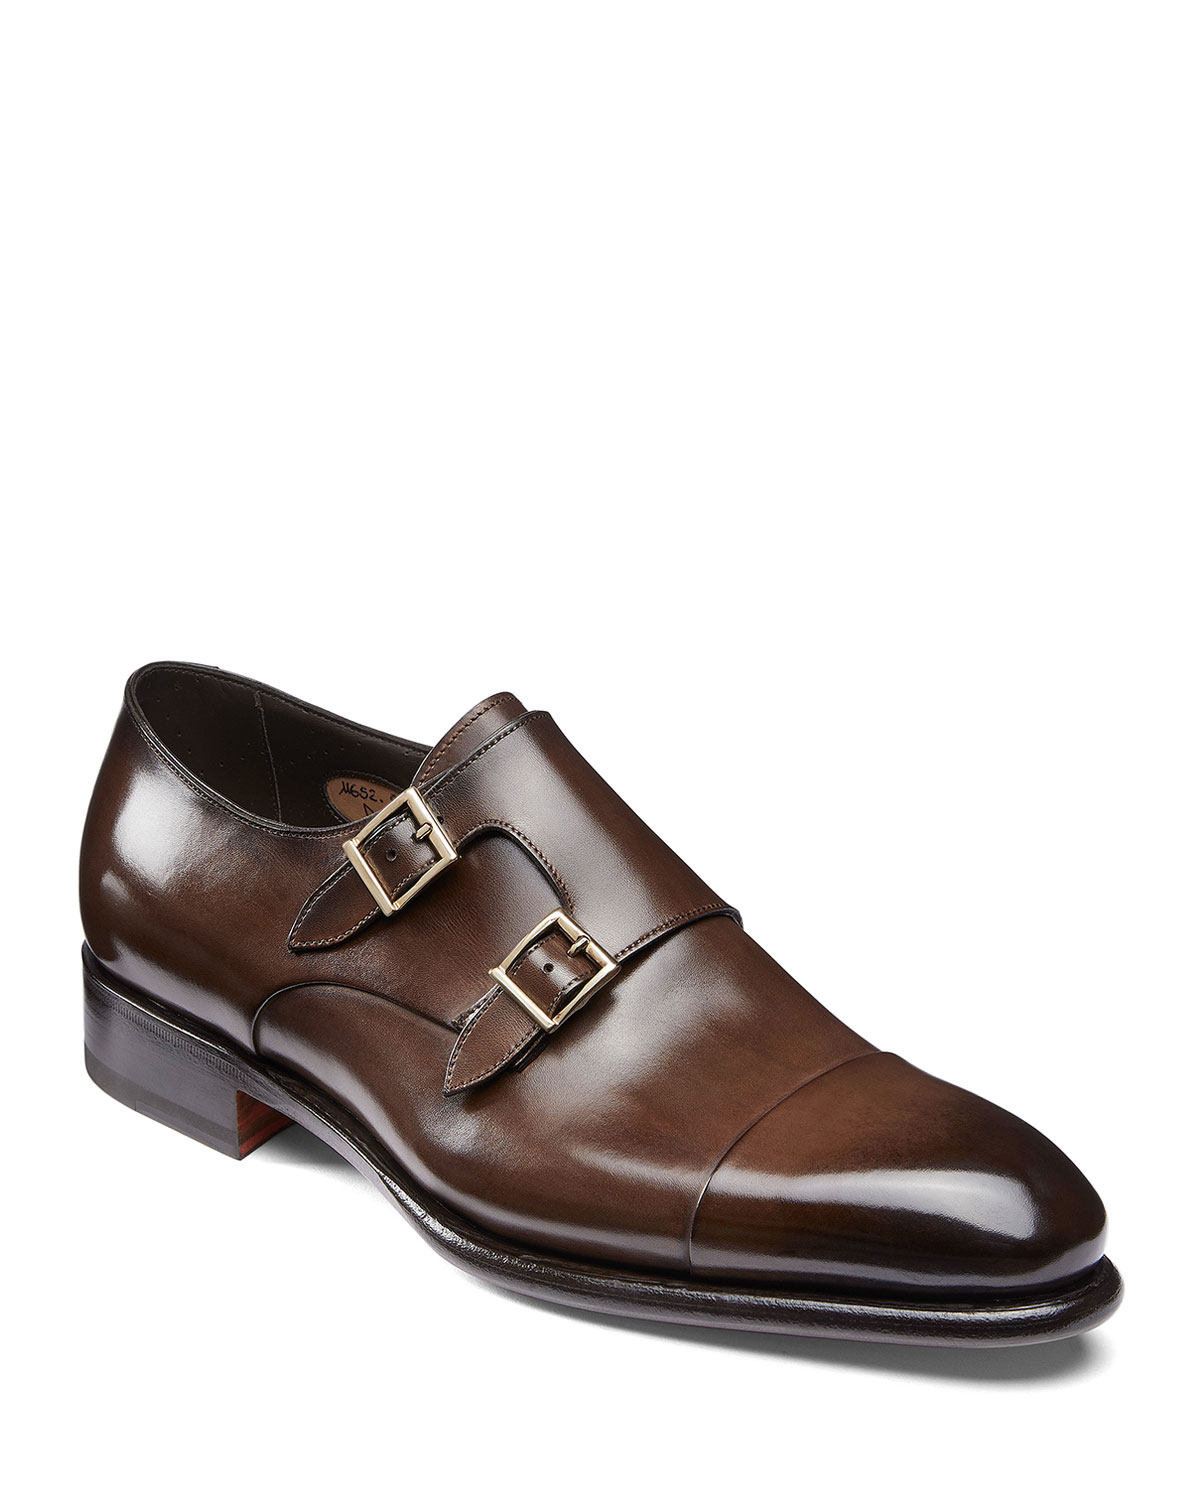 Santoni Ira Men's Brown Double-Monk Strap Loafers